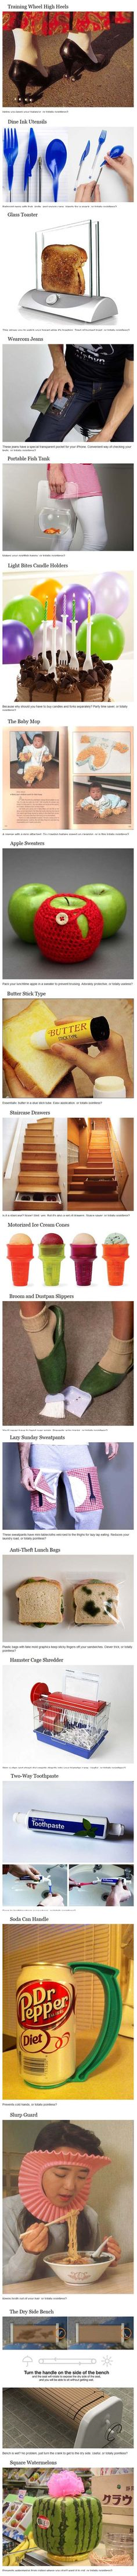 20 Clever and Bizarre Inventions